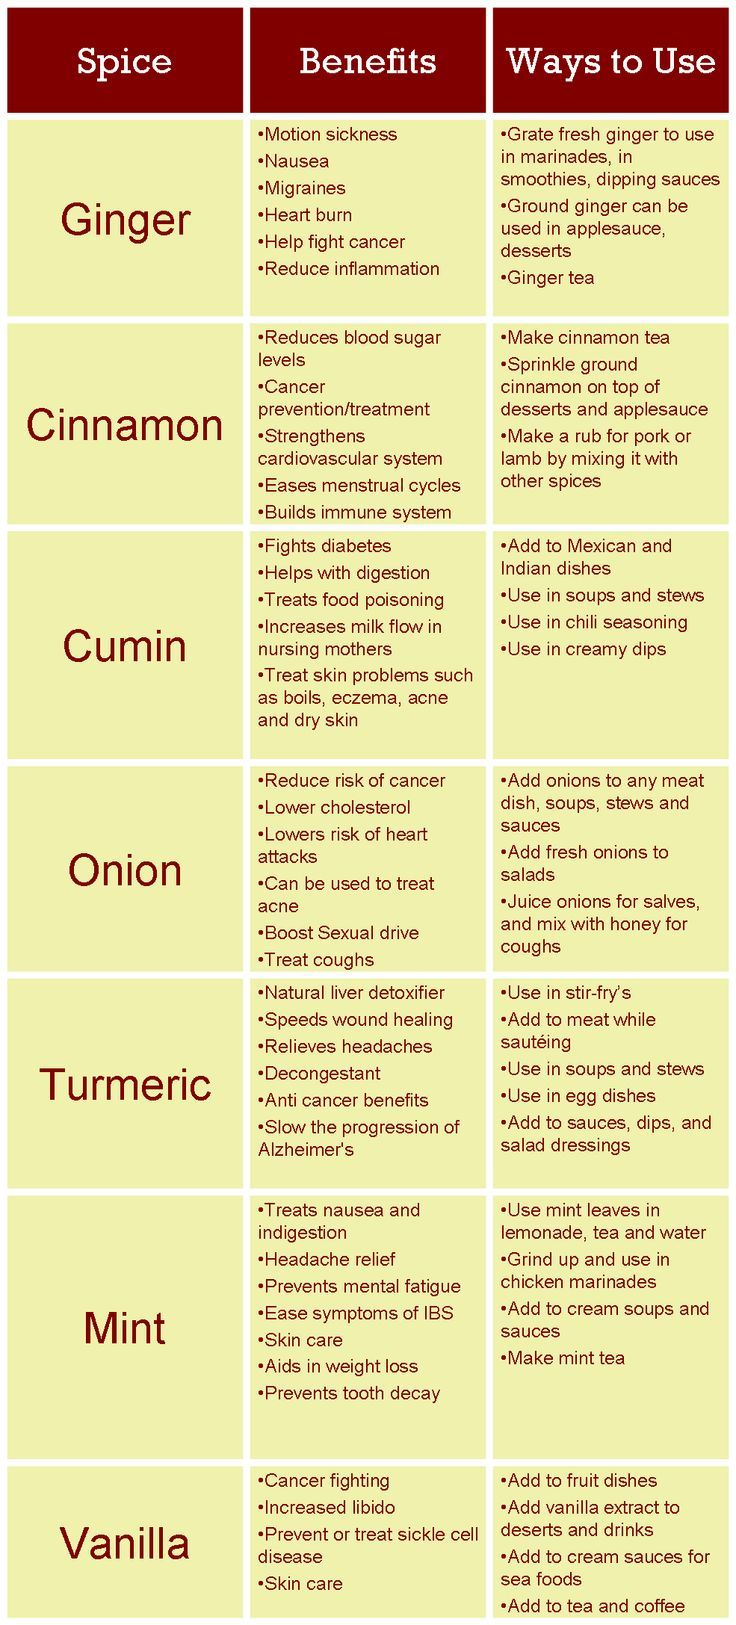 Healing Spices chart ~~ How #Spices can Improve your #Health. Cinnamon, Ginger, Cumin, etc. #FranticMama